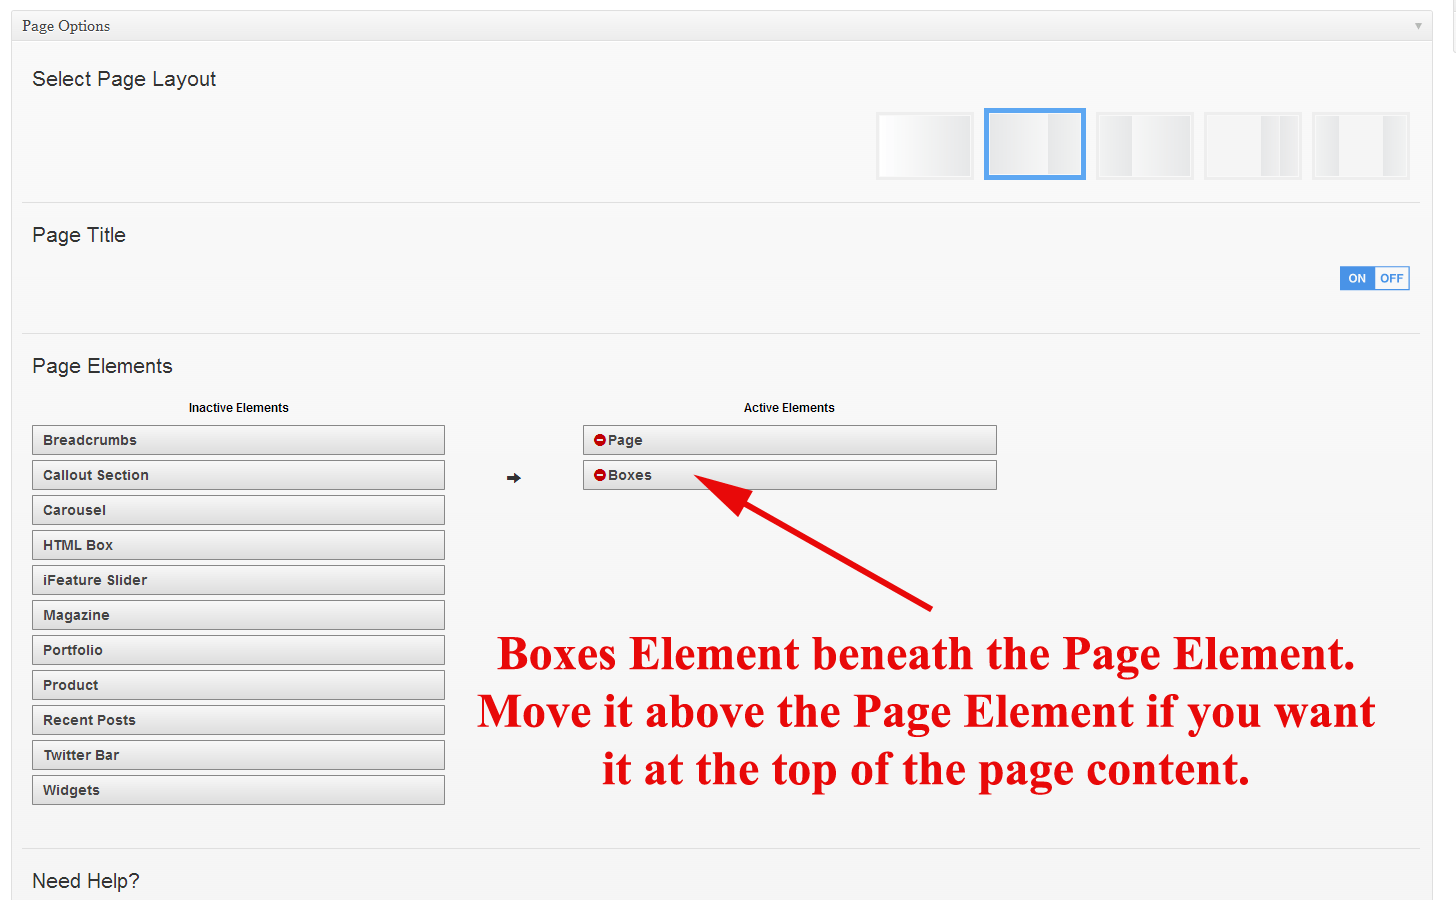 Activate Box Element in Page